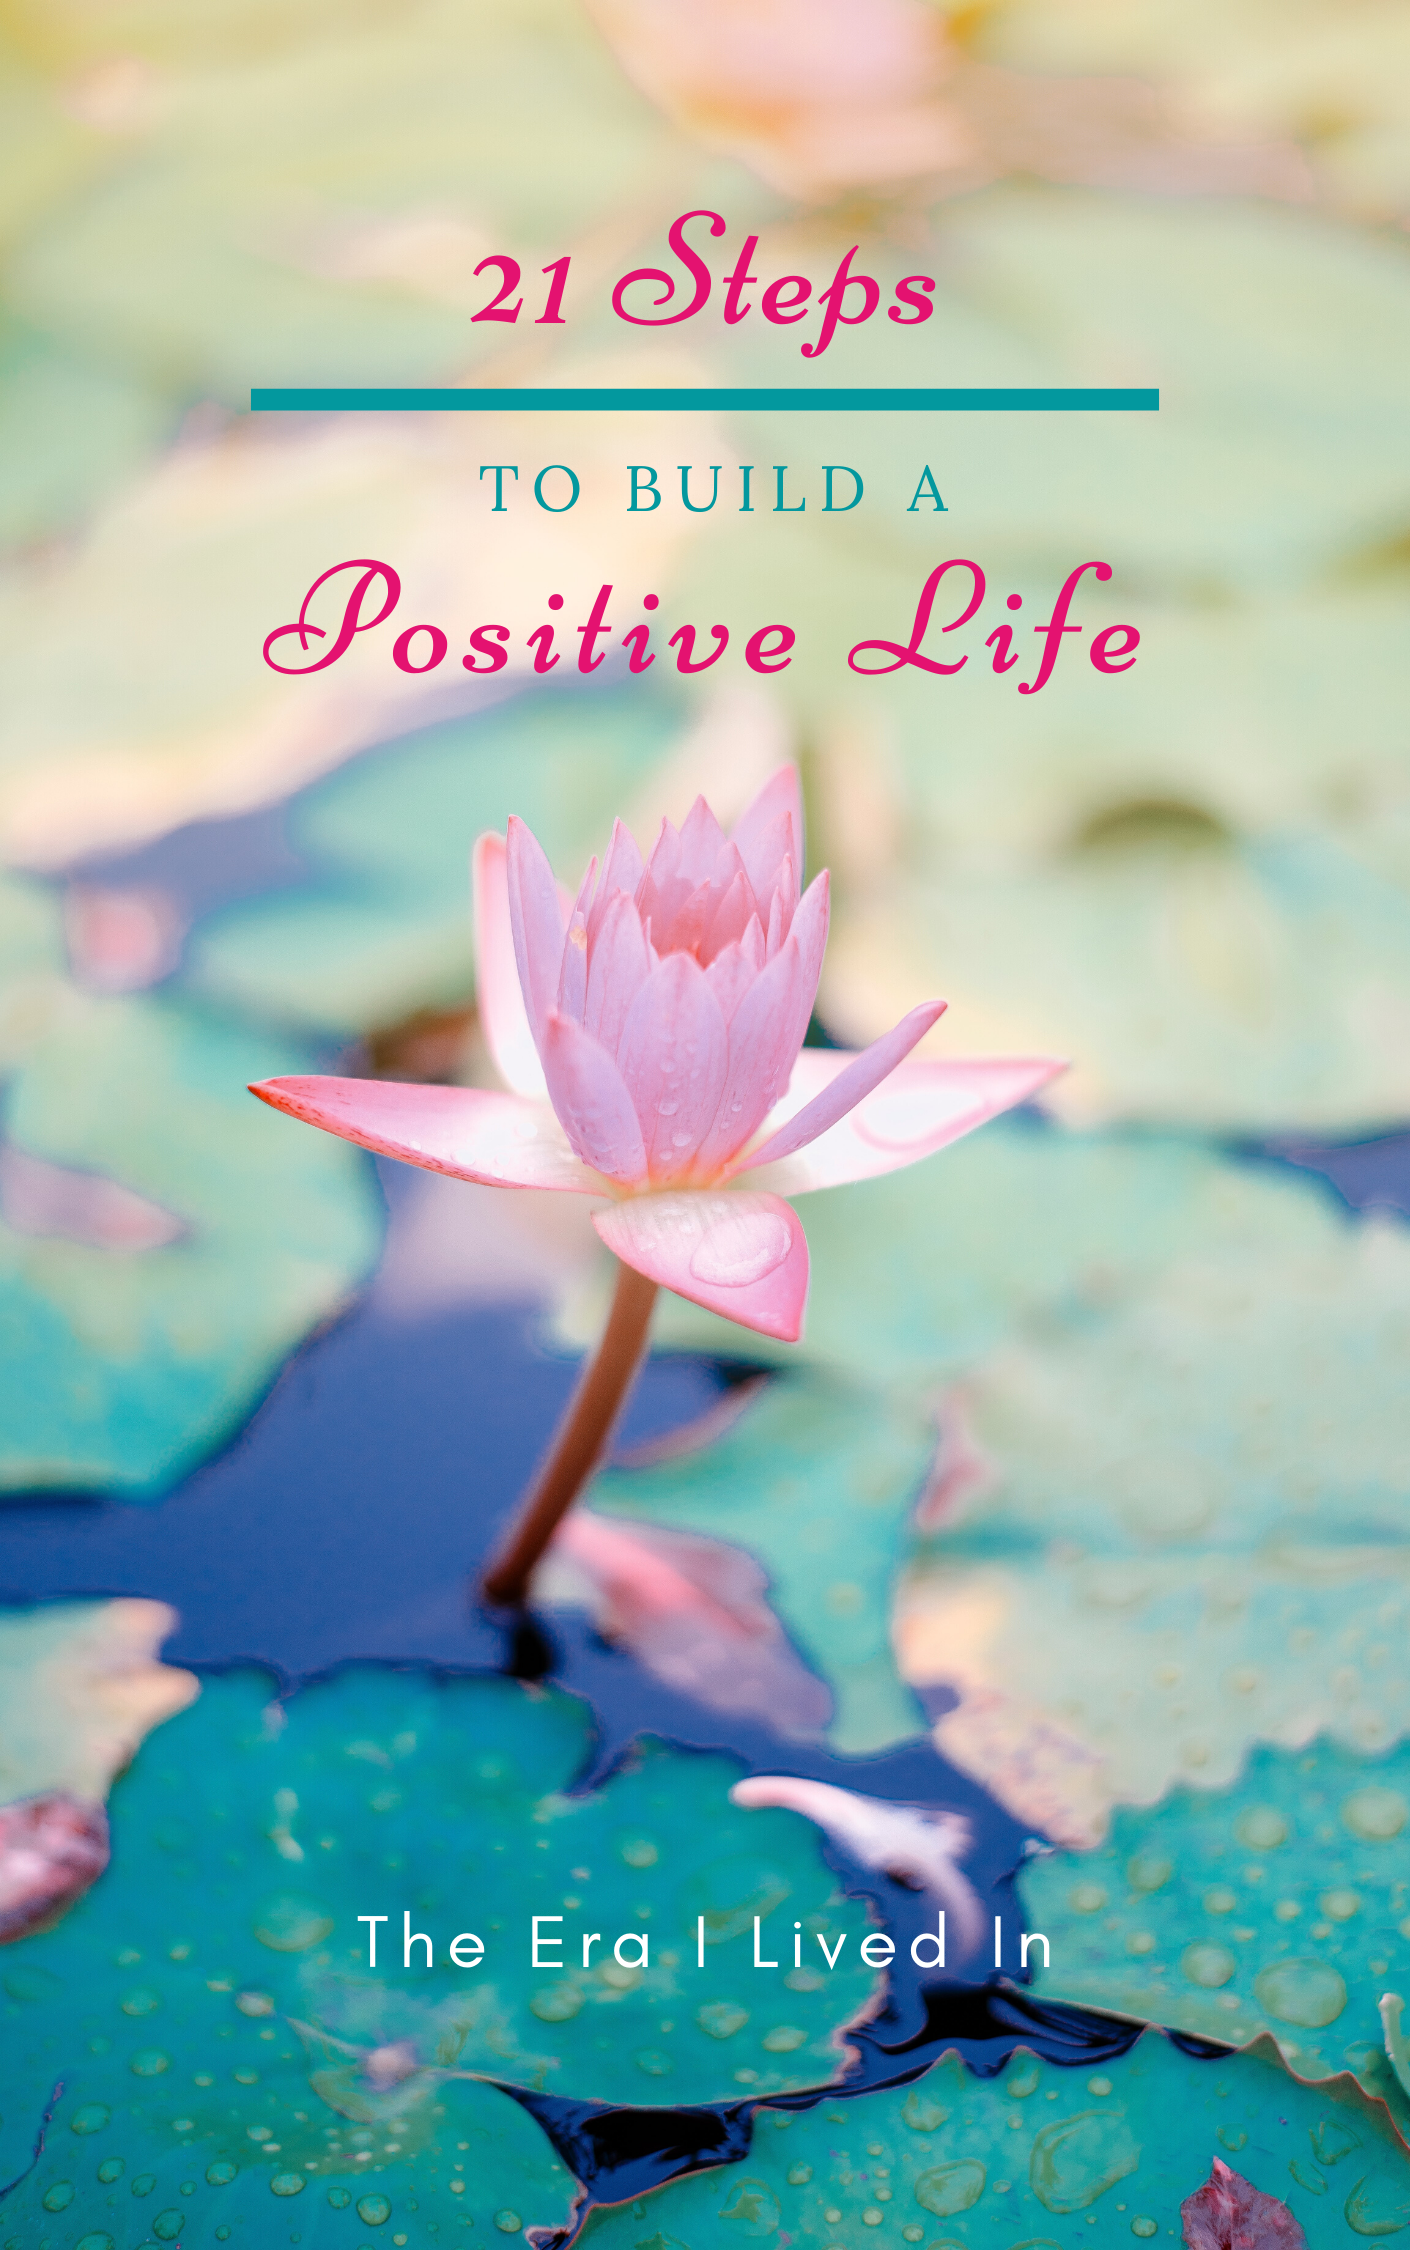 21 Steps to Build a Positive Life e-book - The Era I lIved In